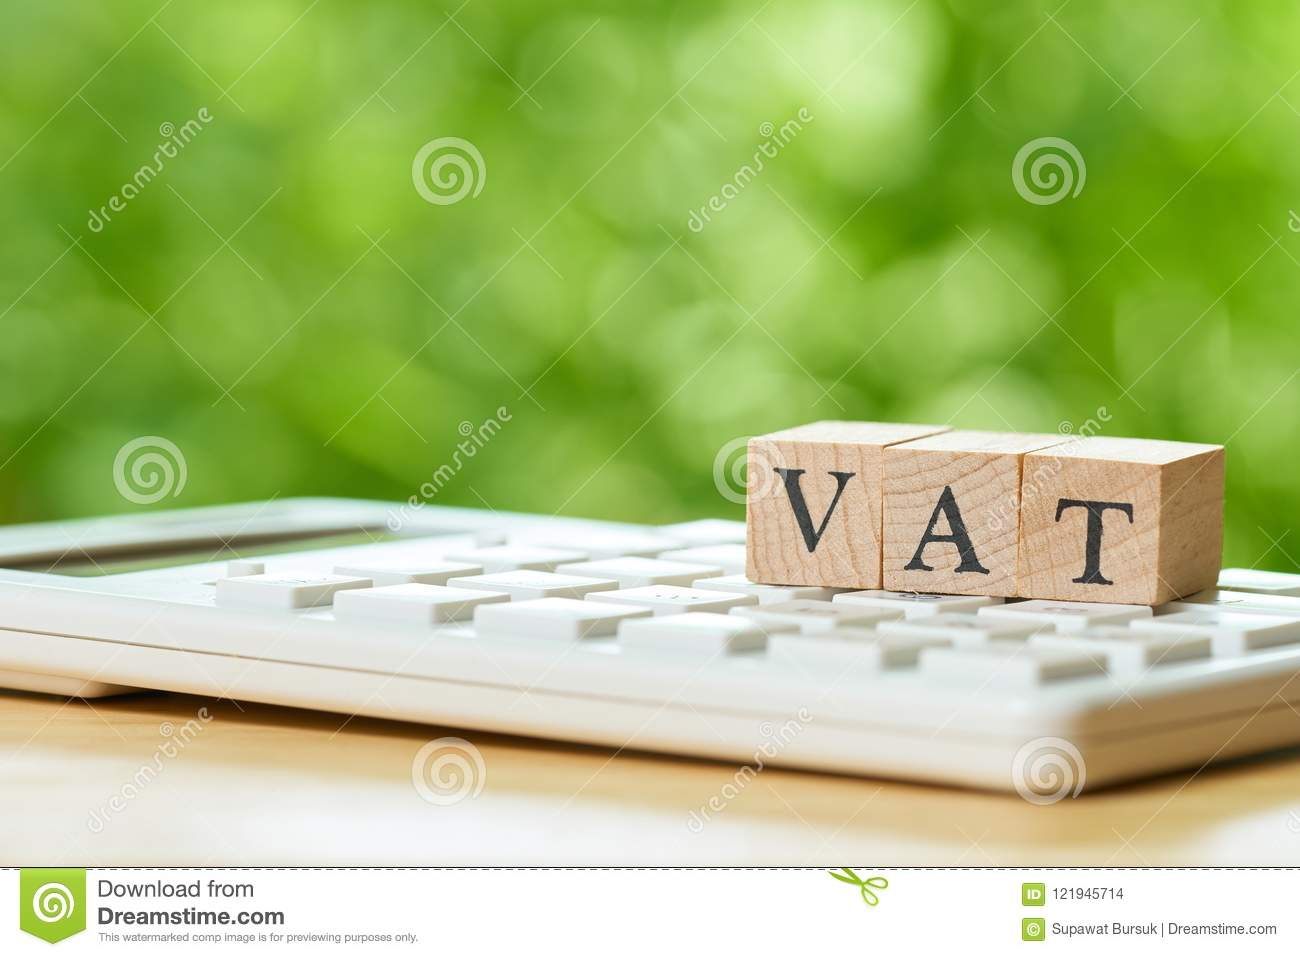 Pay Annual Income Vat For The Year On Calculator Using As